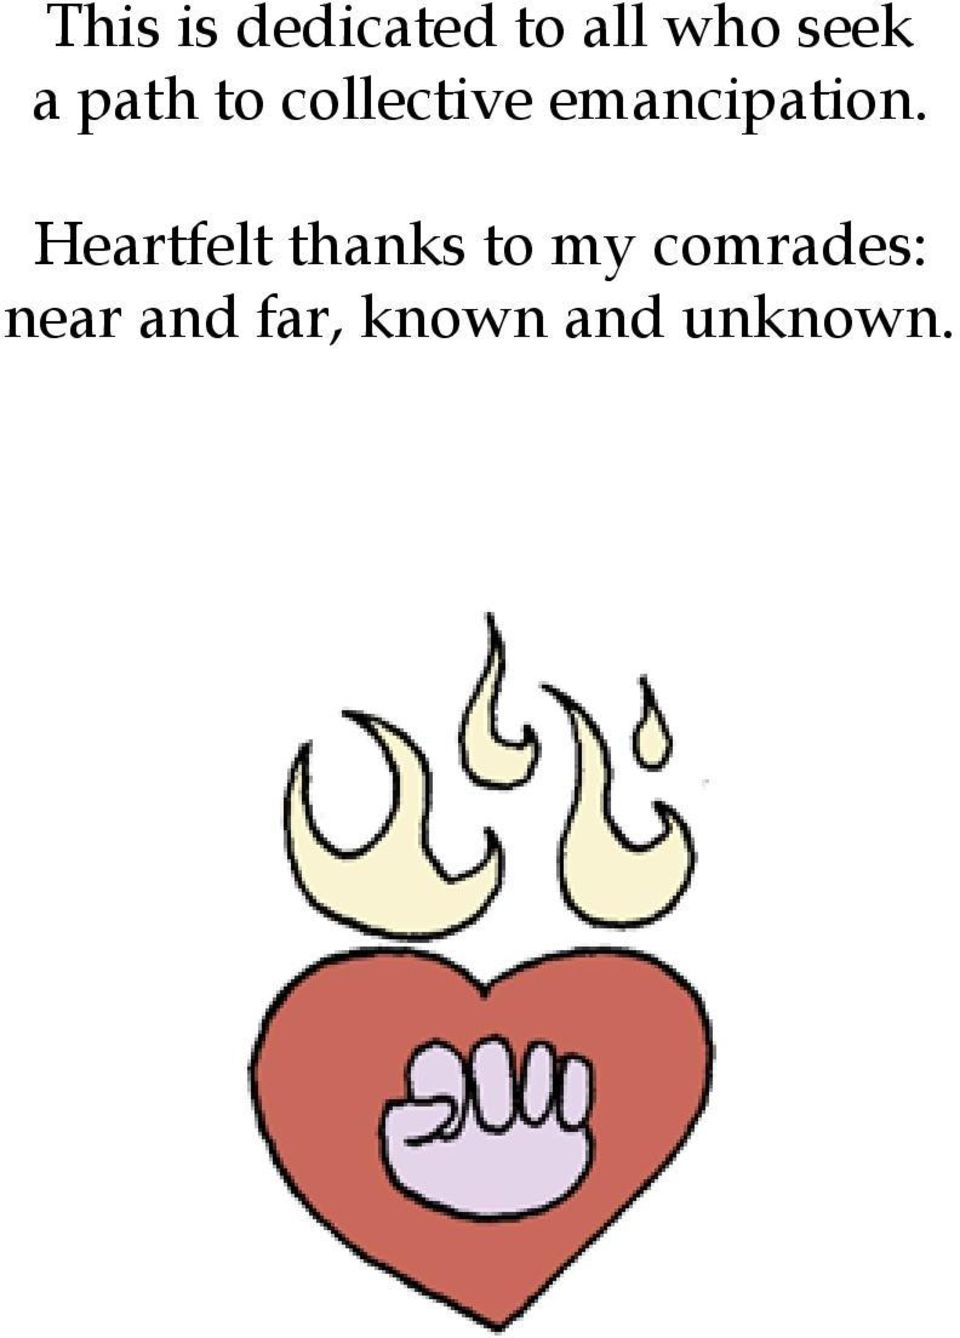 Heartfelt thanks to my comrades: